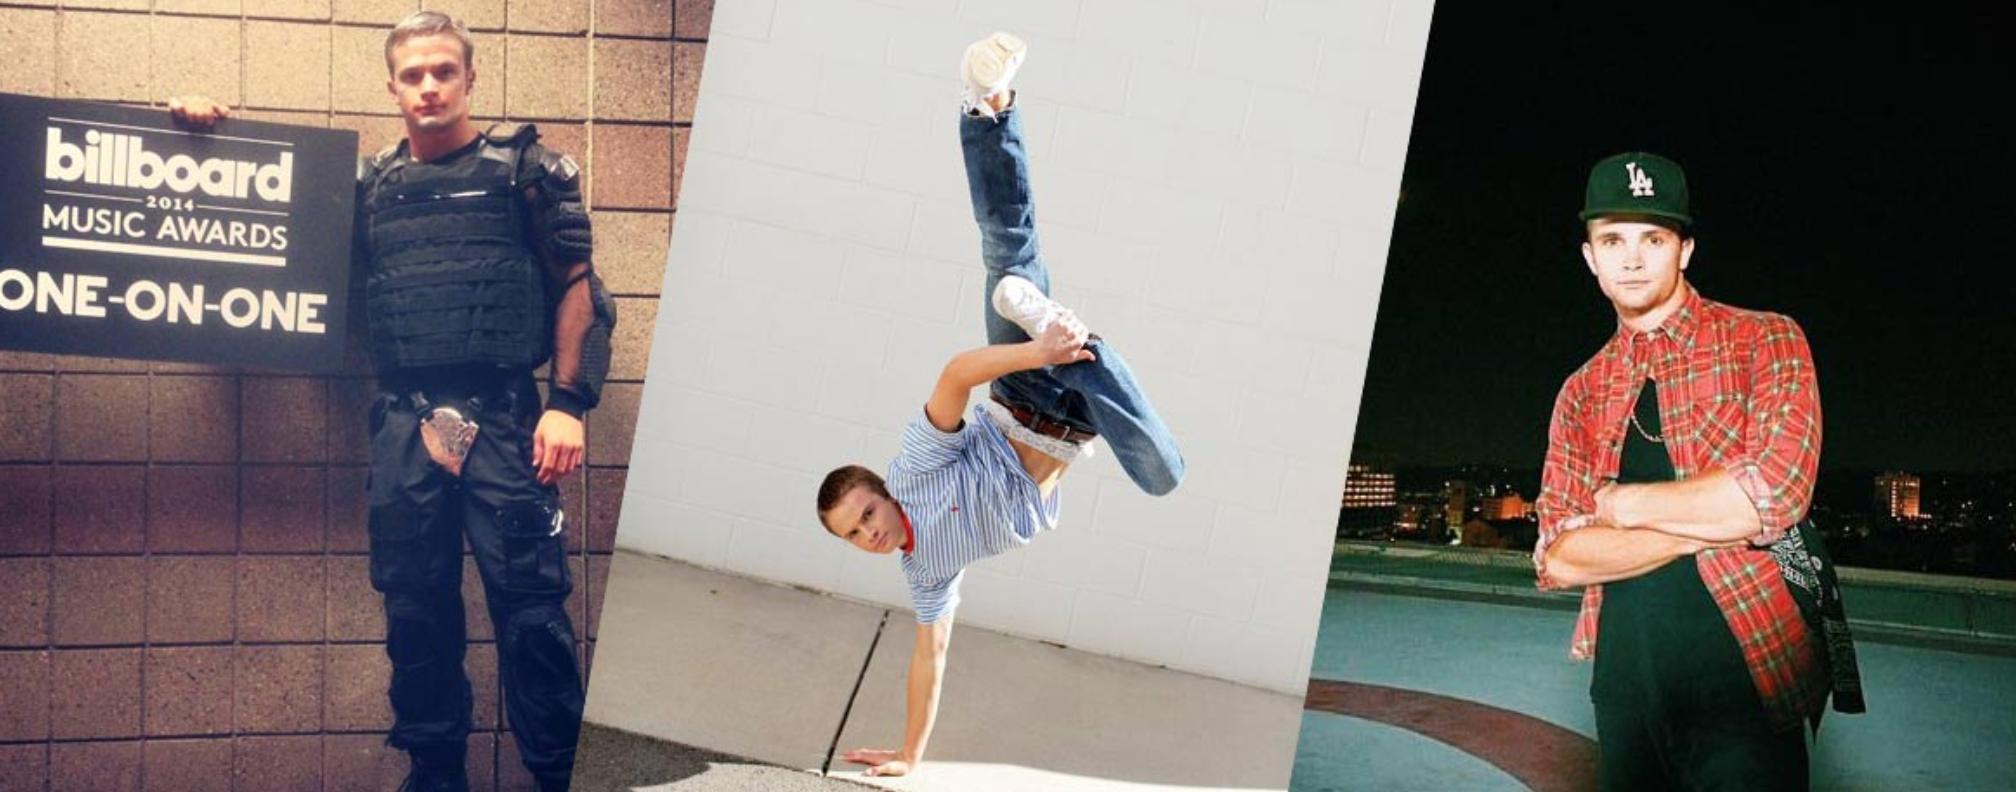 Asher Walker is a dancer with some pretty cool credits. He's also formed a dance ministry to help kids.